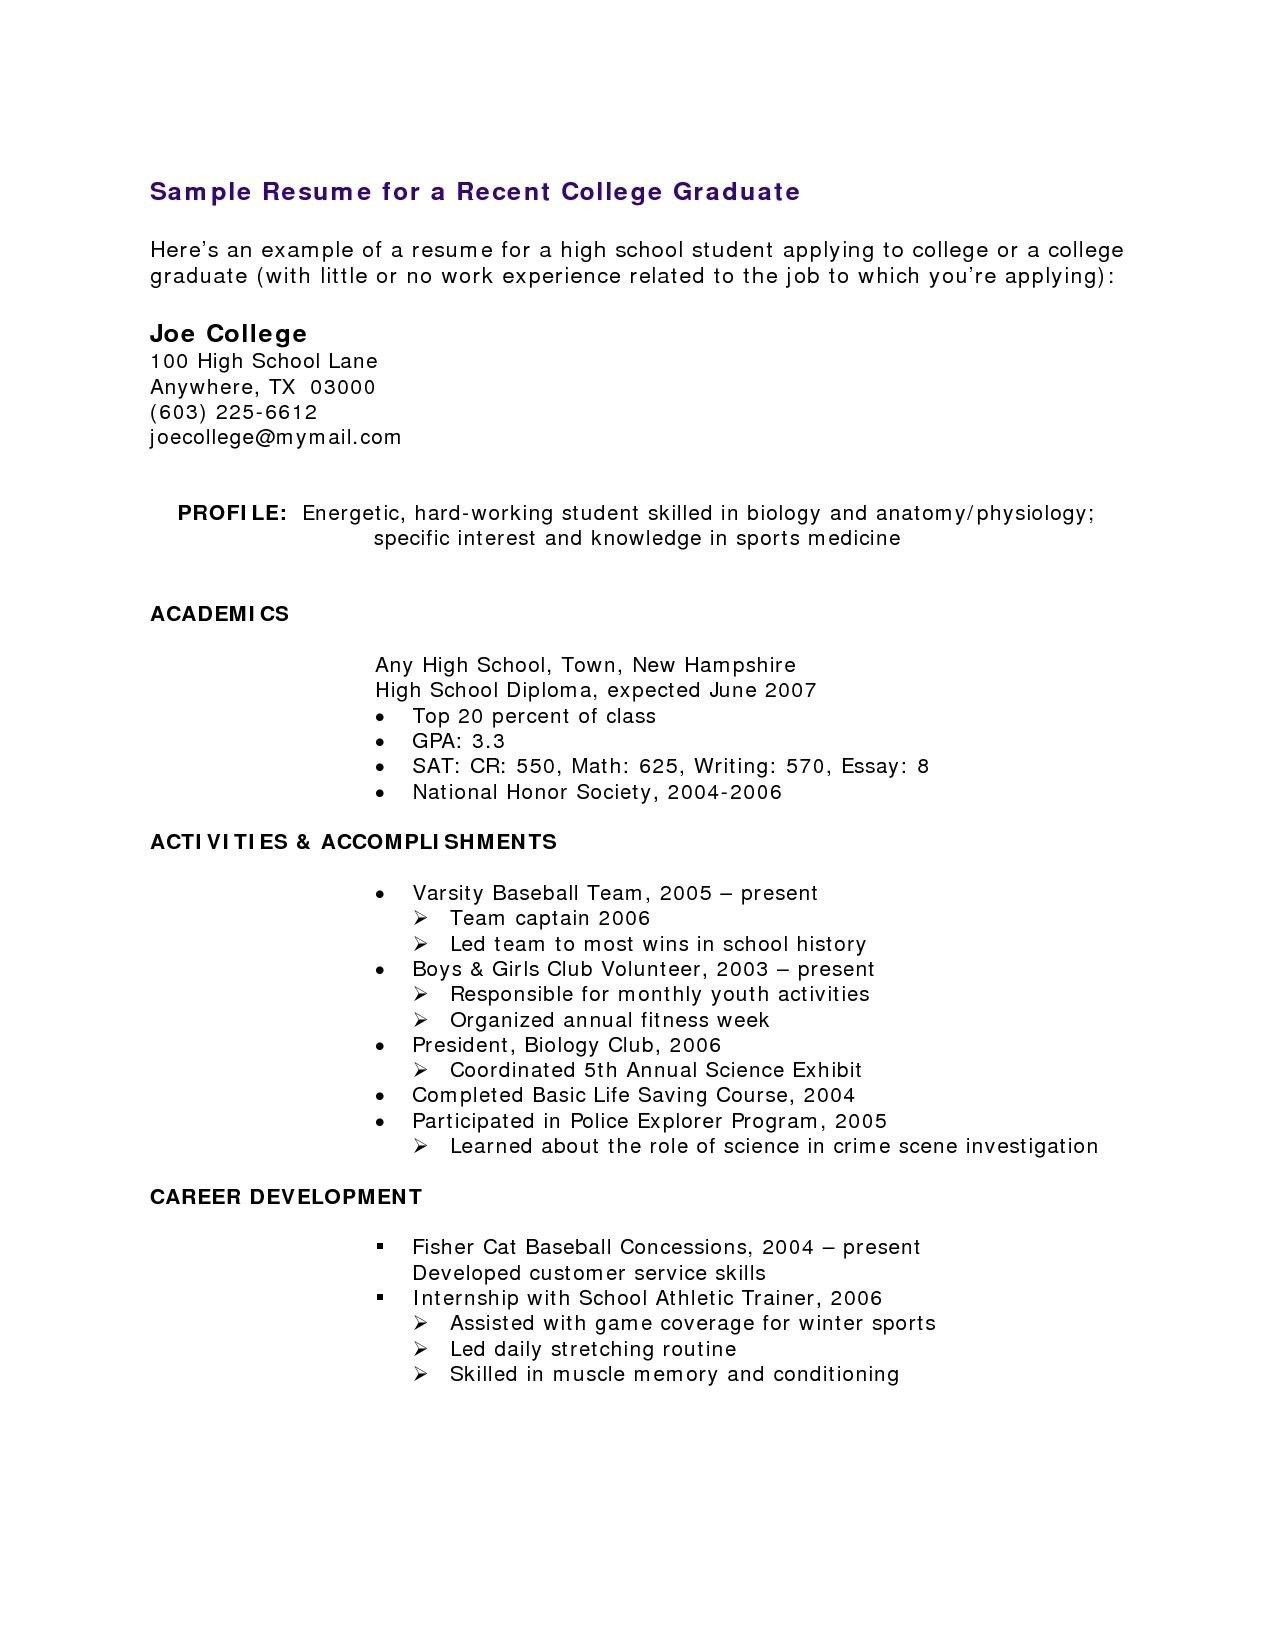 student athlete resume example example-Student athlete Resume 16 Student athlete Resume 1-r